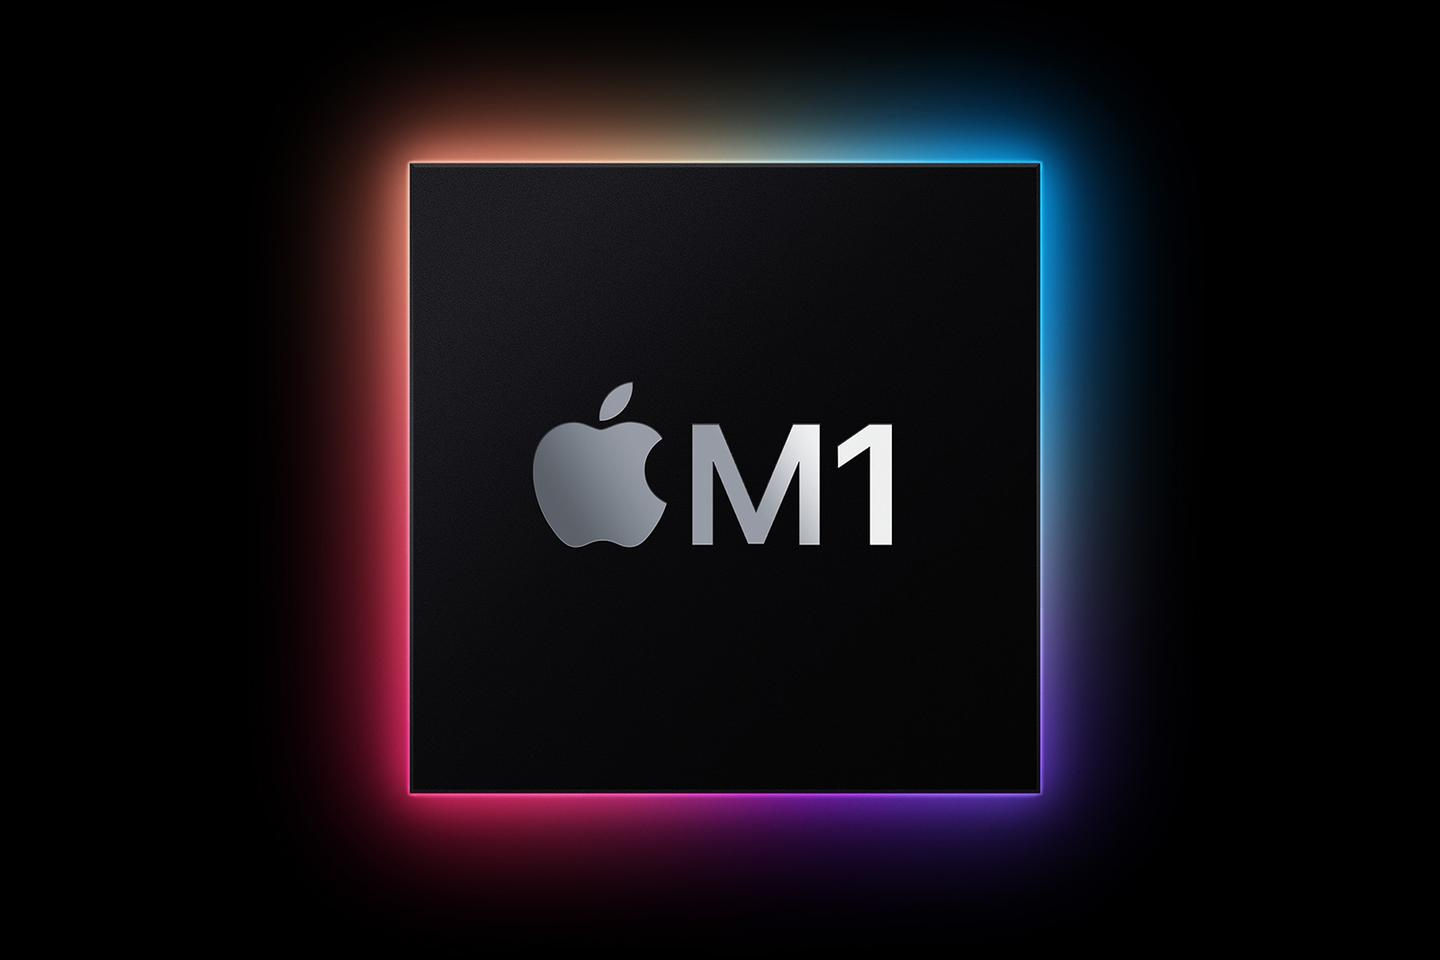 Apple has announced the new M1 chip based on its own design